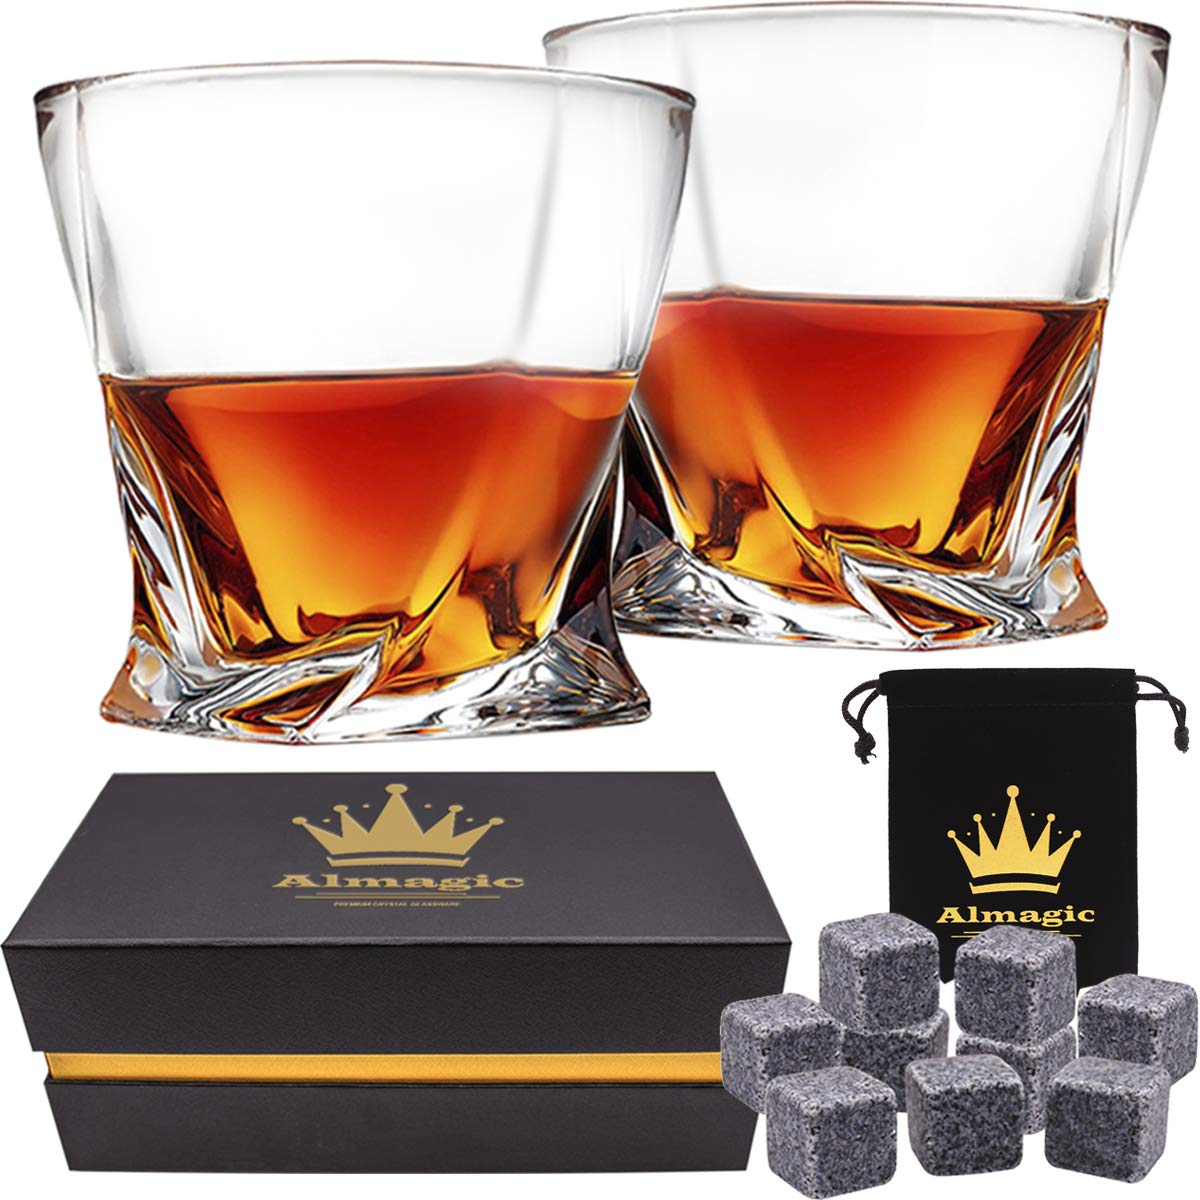 Almagic Whiskey Glass Set of 2 Lead Free Crystal Old Fashioned Glass 10oz for Scotch or Bourbon Gift Boxed (Free 9 Granite Chilling Whiskey Stones + Velvet Bag) by Almagic